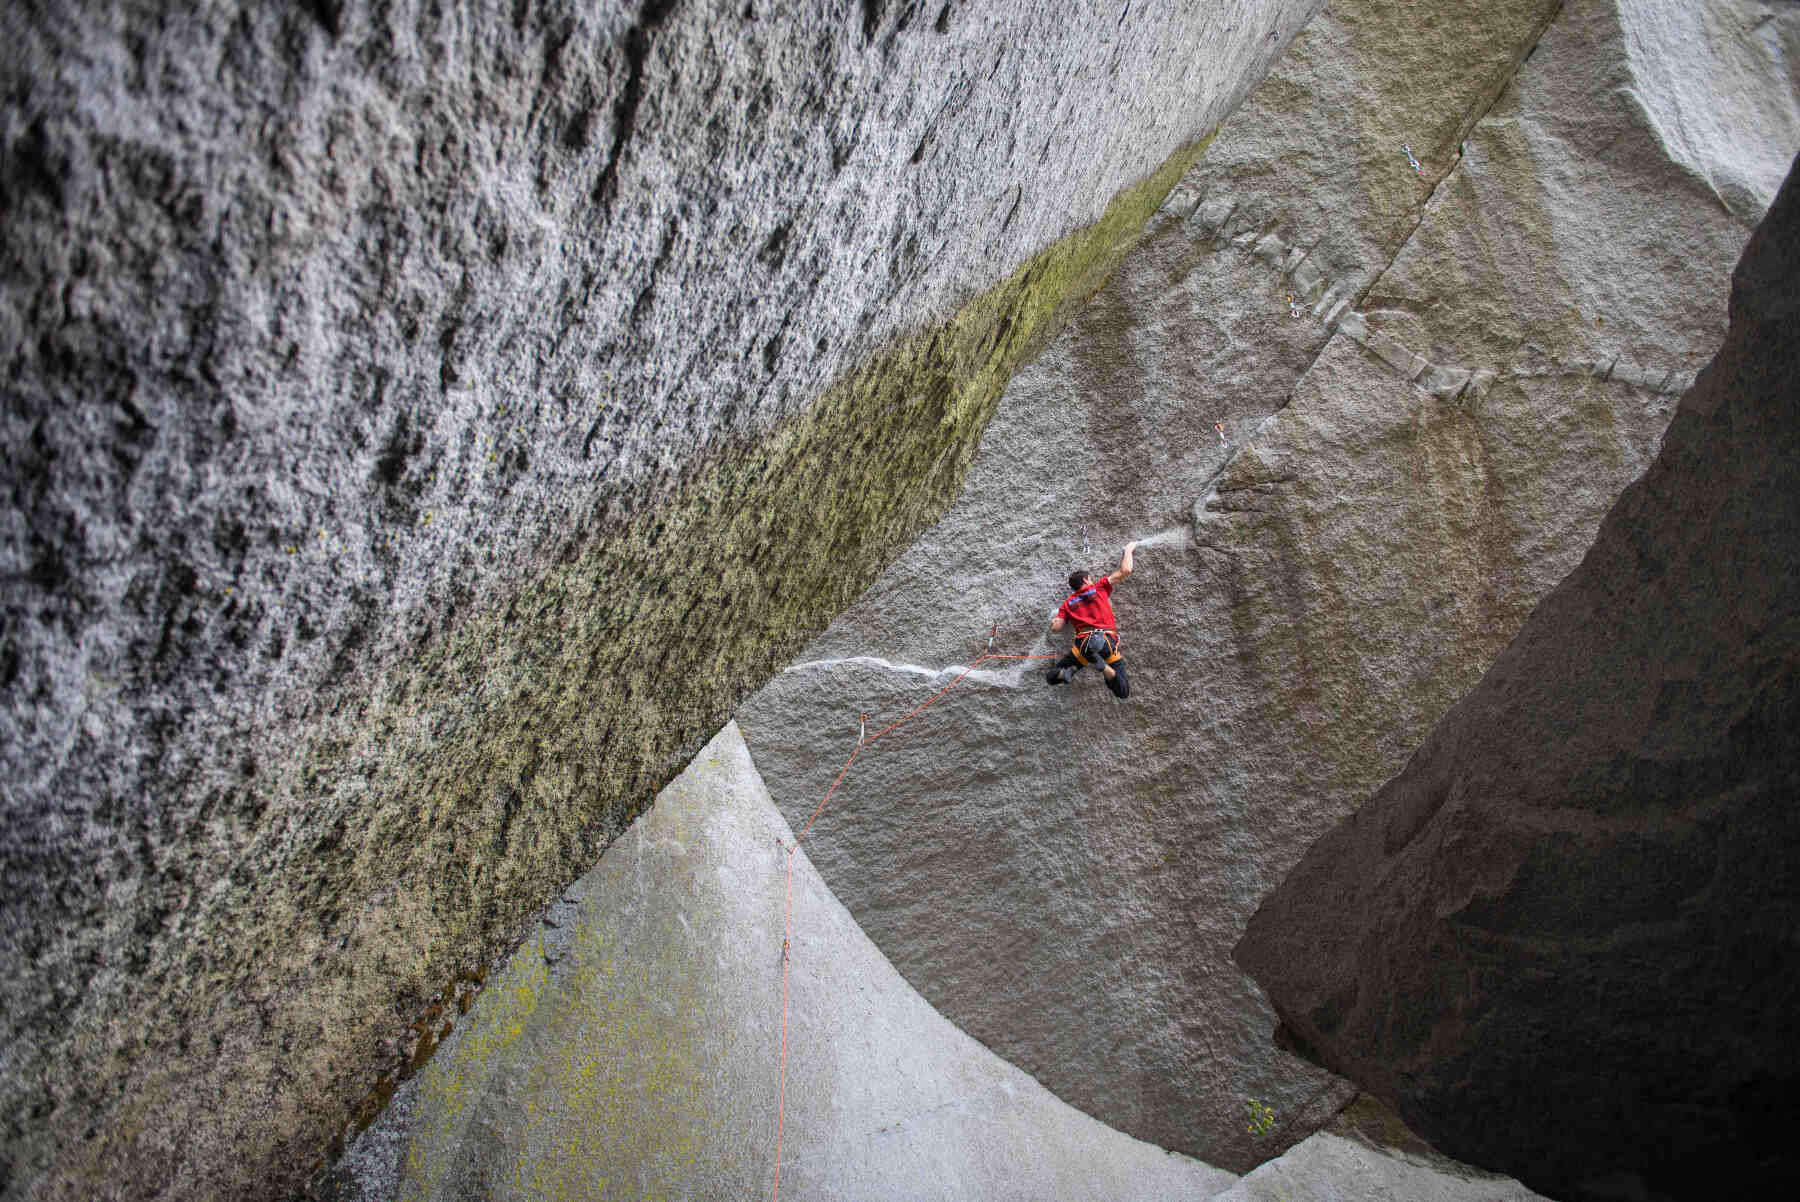 Jamie Finlayson, FrictionLabs rock climbing chalk pro athlete, climbing on Dreamcatcher 14d in Squamish BC on October 6, 2015